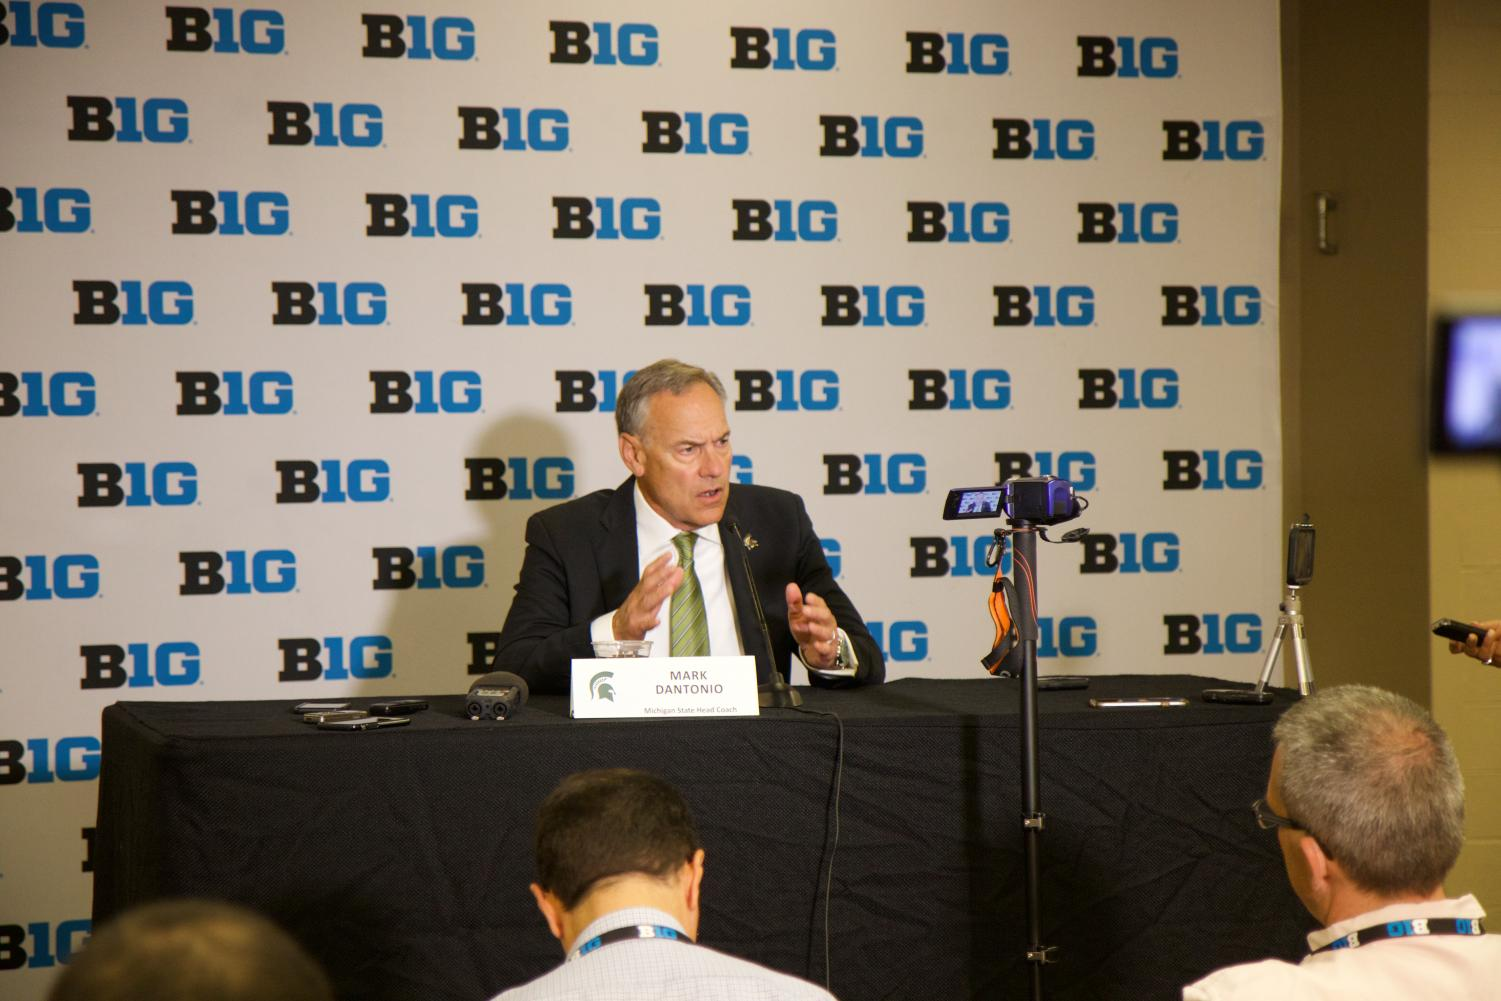 Coach Mark Dantonio speaks about his optimism for the 2019 season. Credit: Trent Balley / WDBM